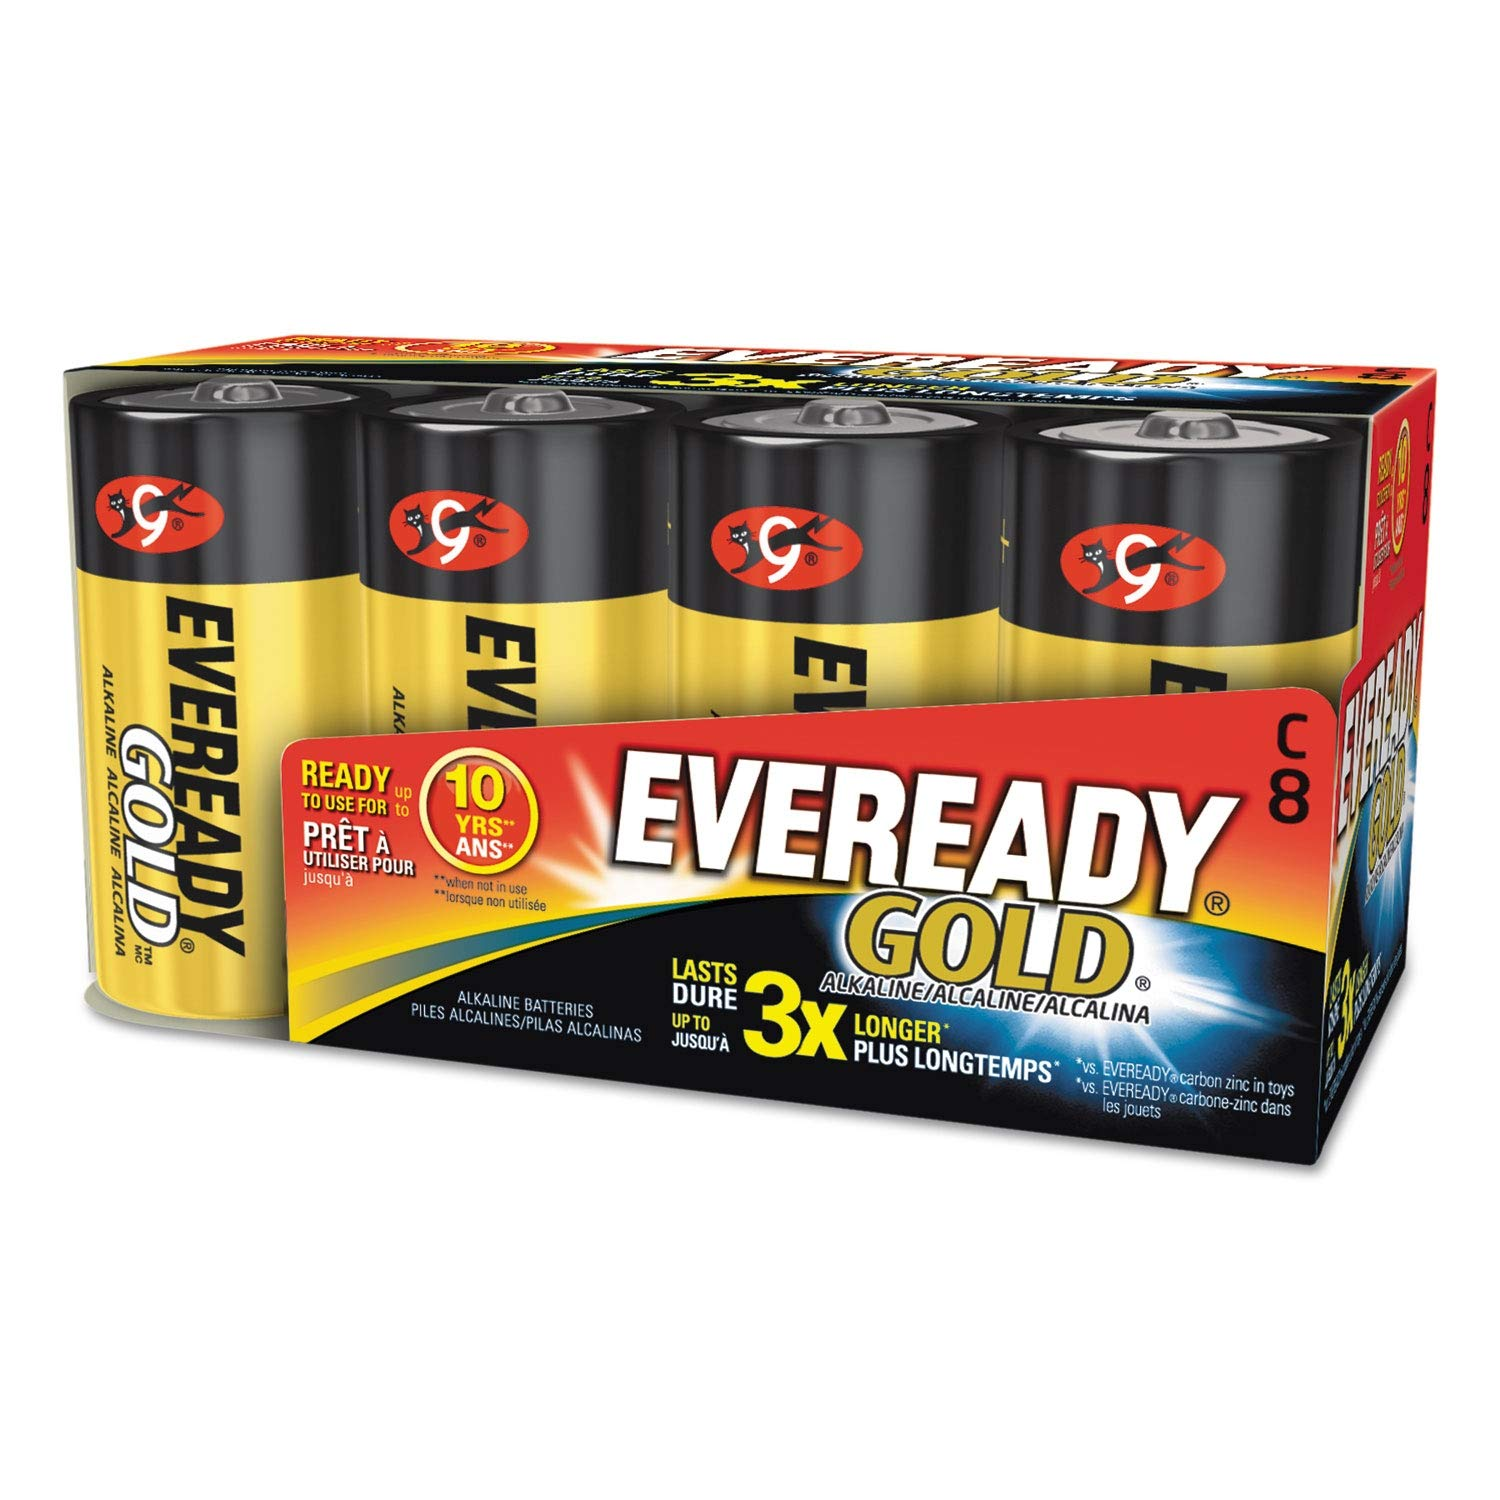 Eveready Gold Alkaline Batteries, C, 8 /Pk - A93-8 Pack of 2